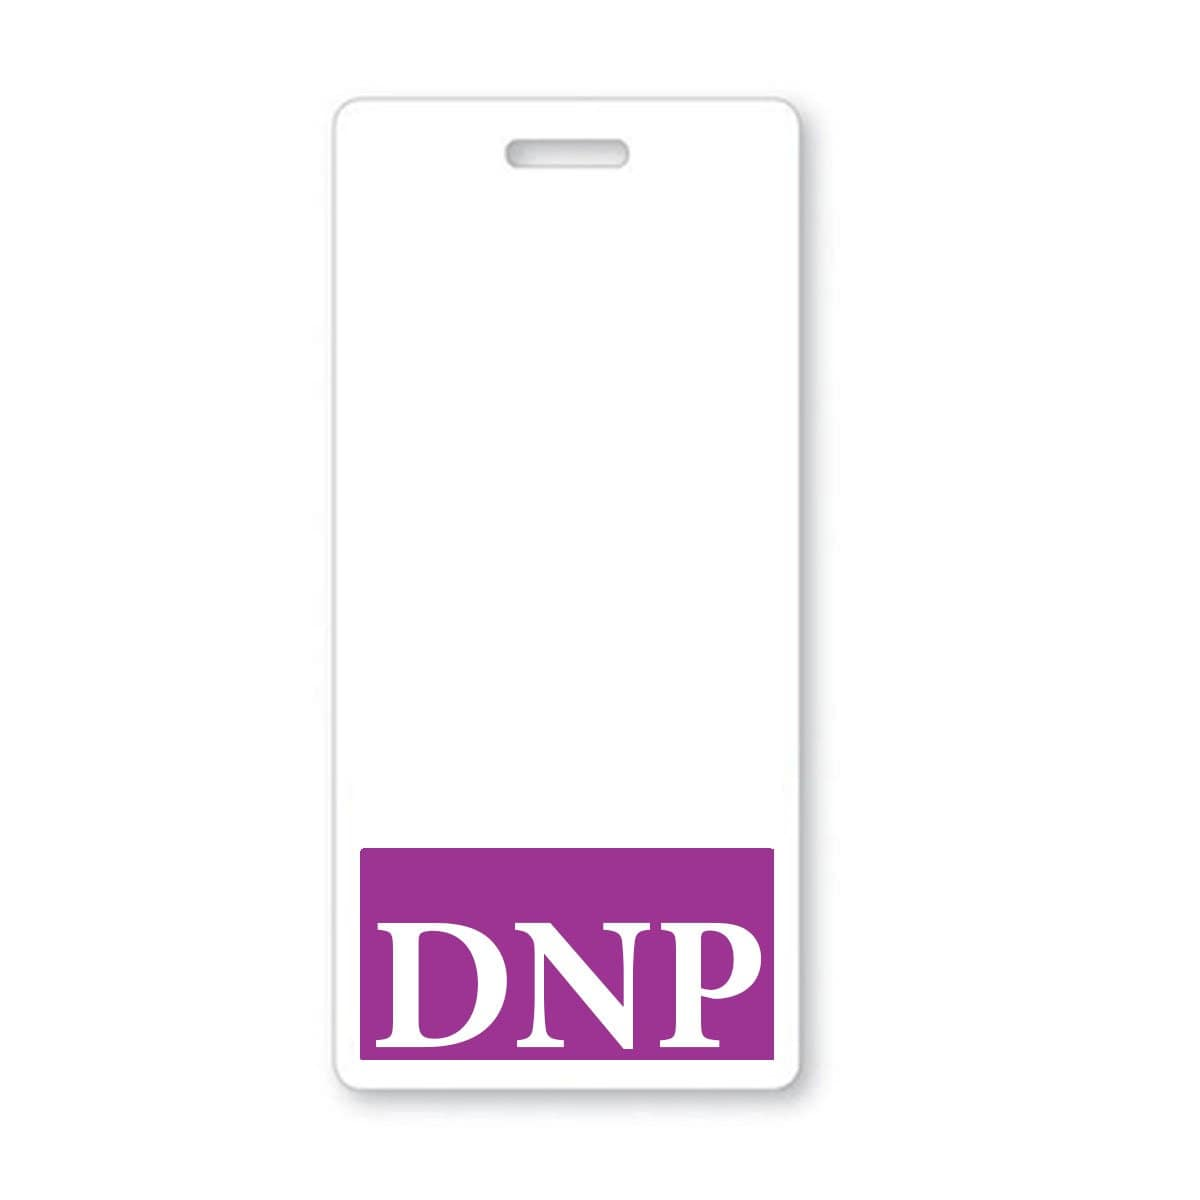 DNP Vertical Badge Buddy with Purple Border